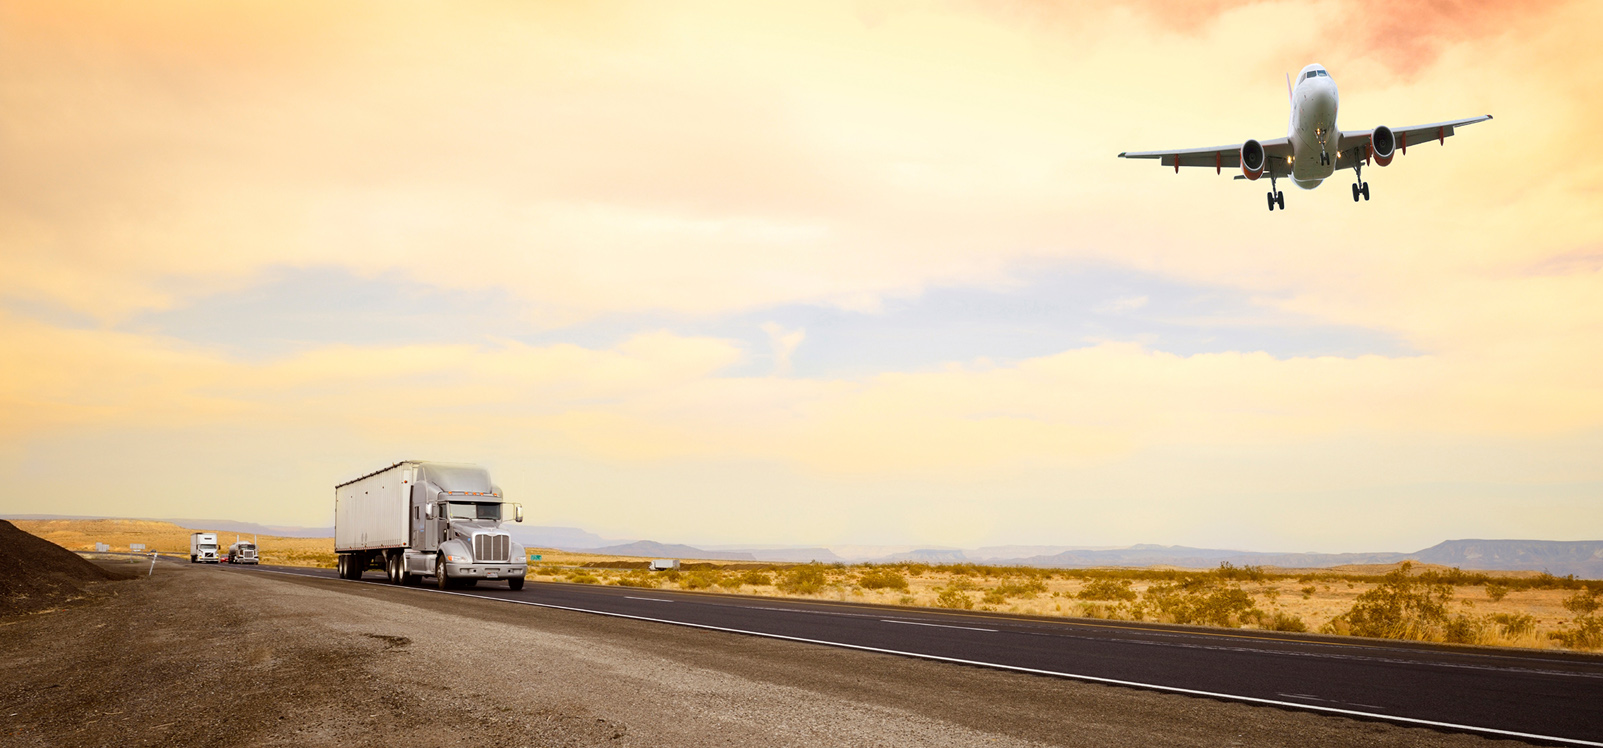 Freight Shipping Services | Trucking Company | Logistics Services | Premier Freight Logistics, Inc.